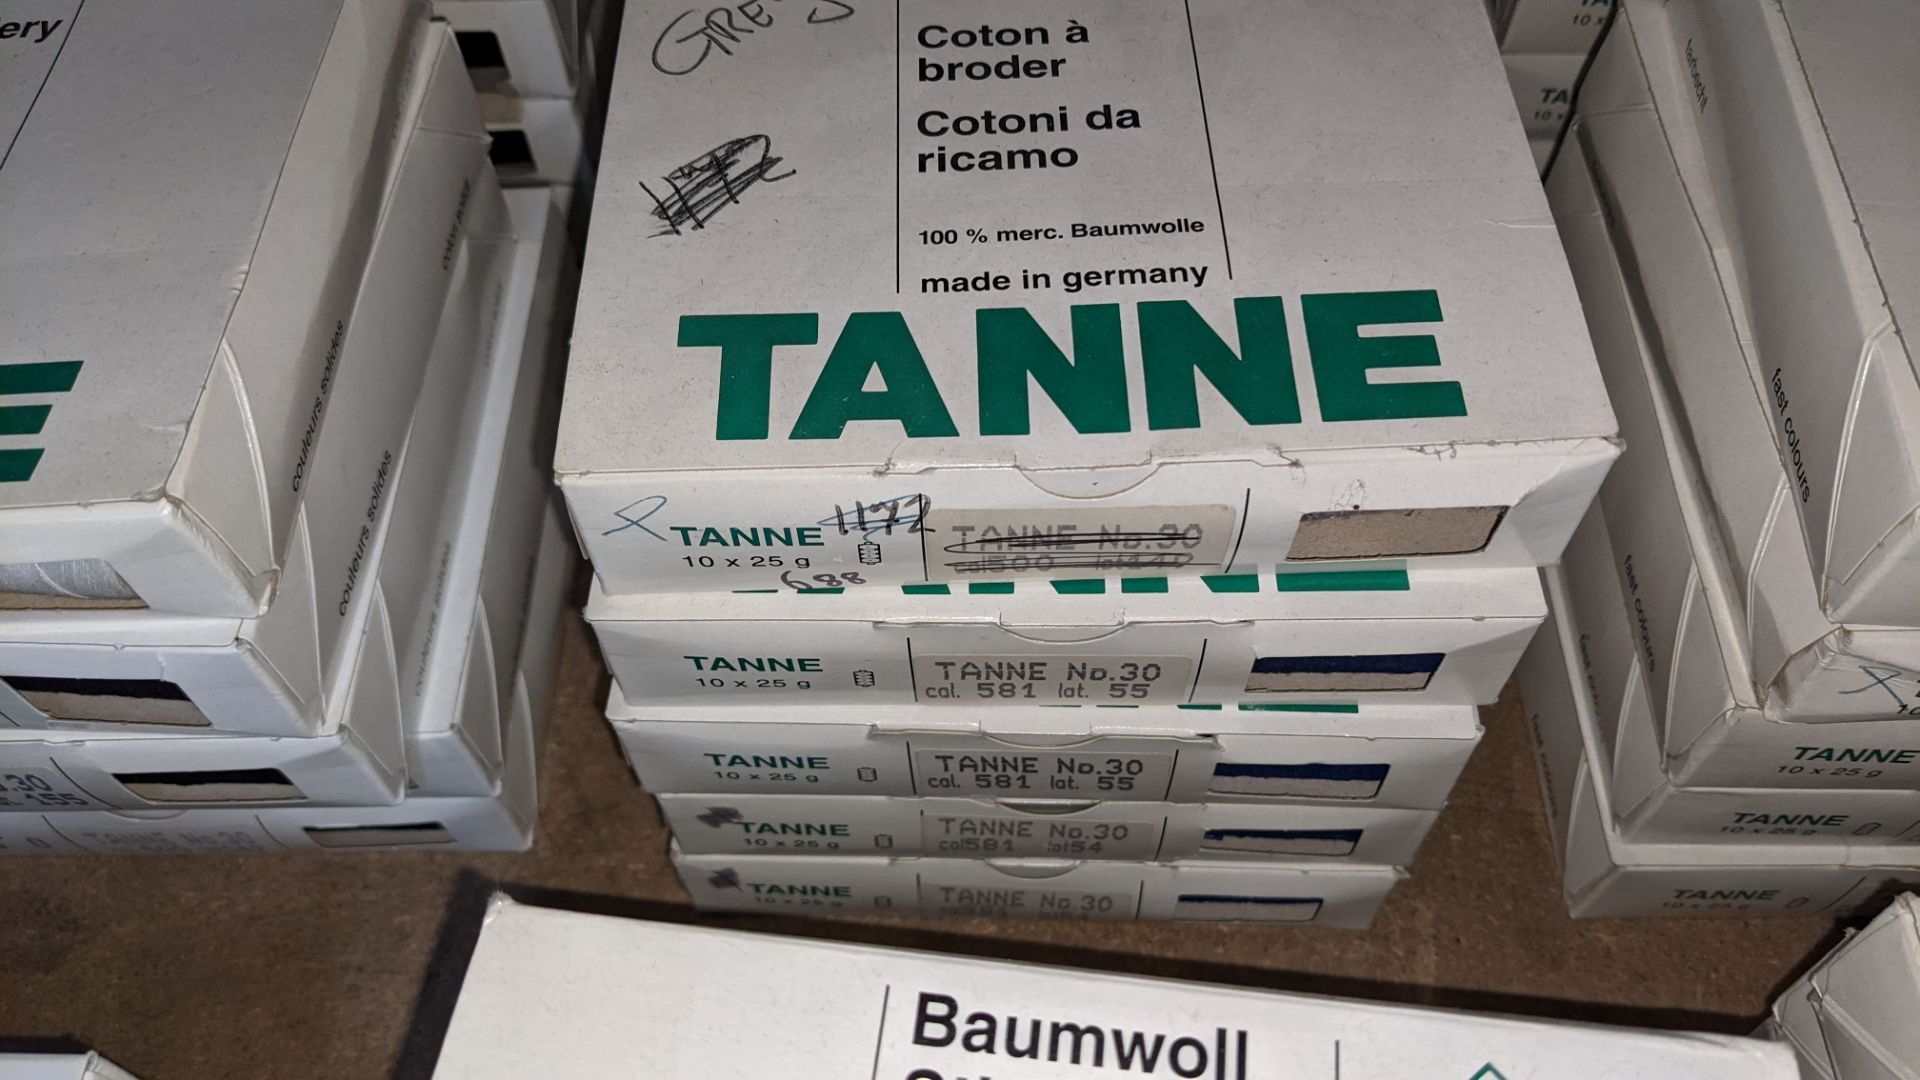 15 boxes of Madeira Tanne (Burmit) cotton embroidery thread - Image 4 of 8